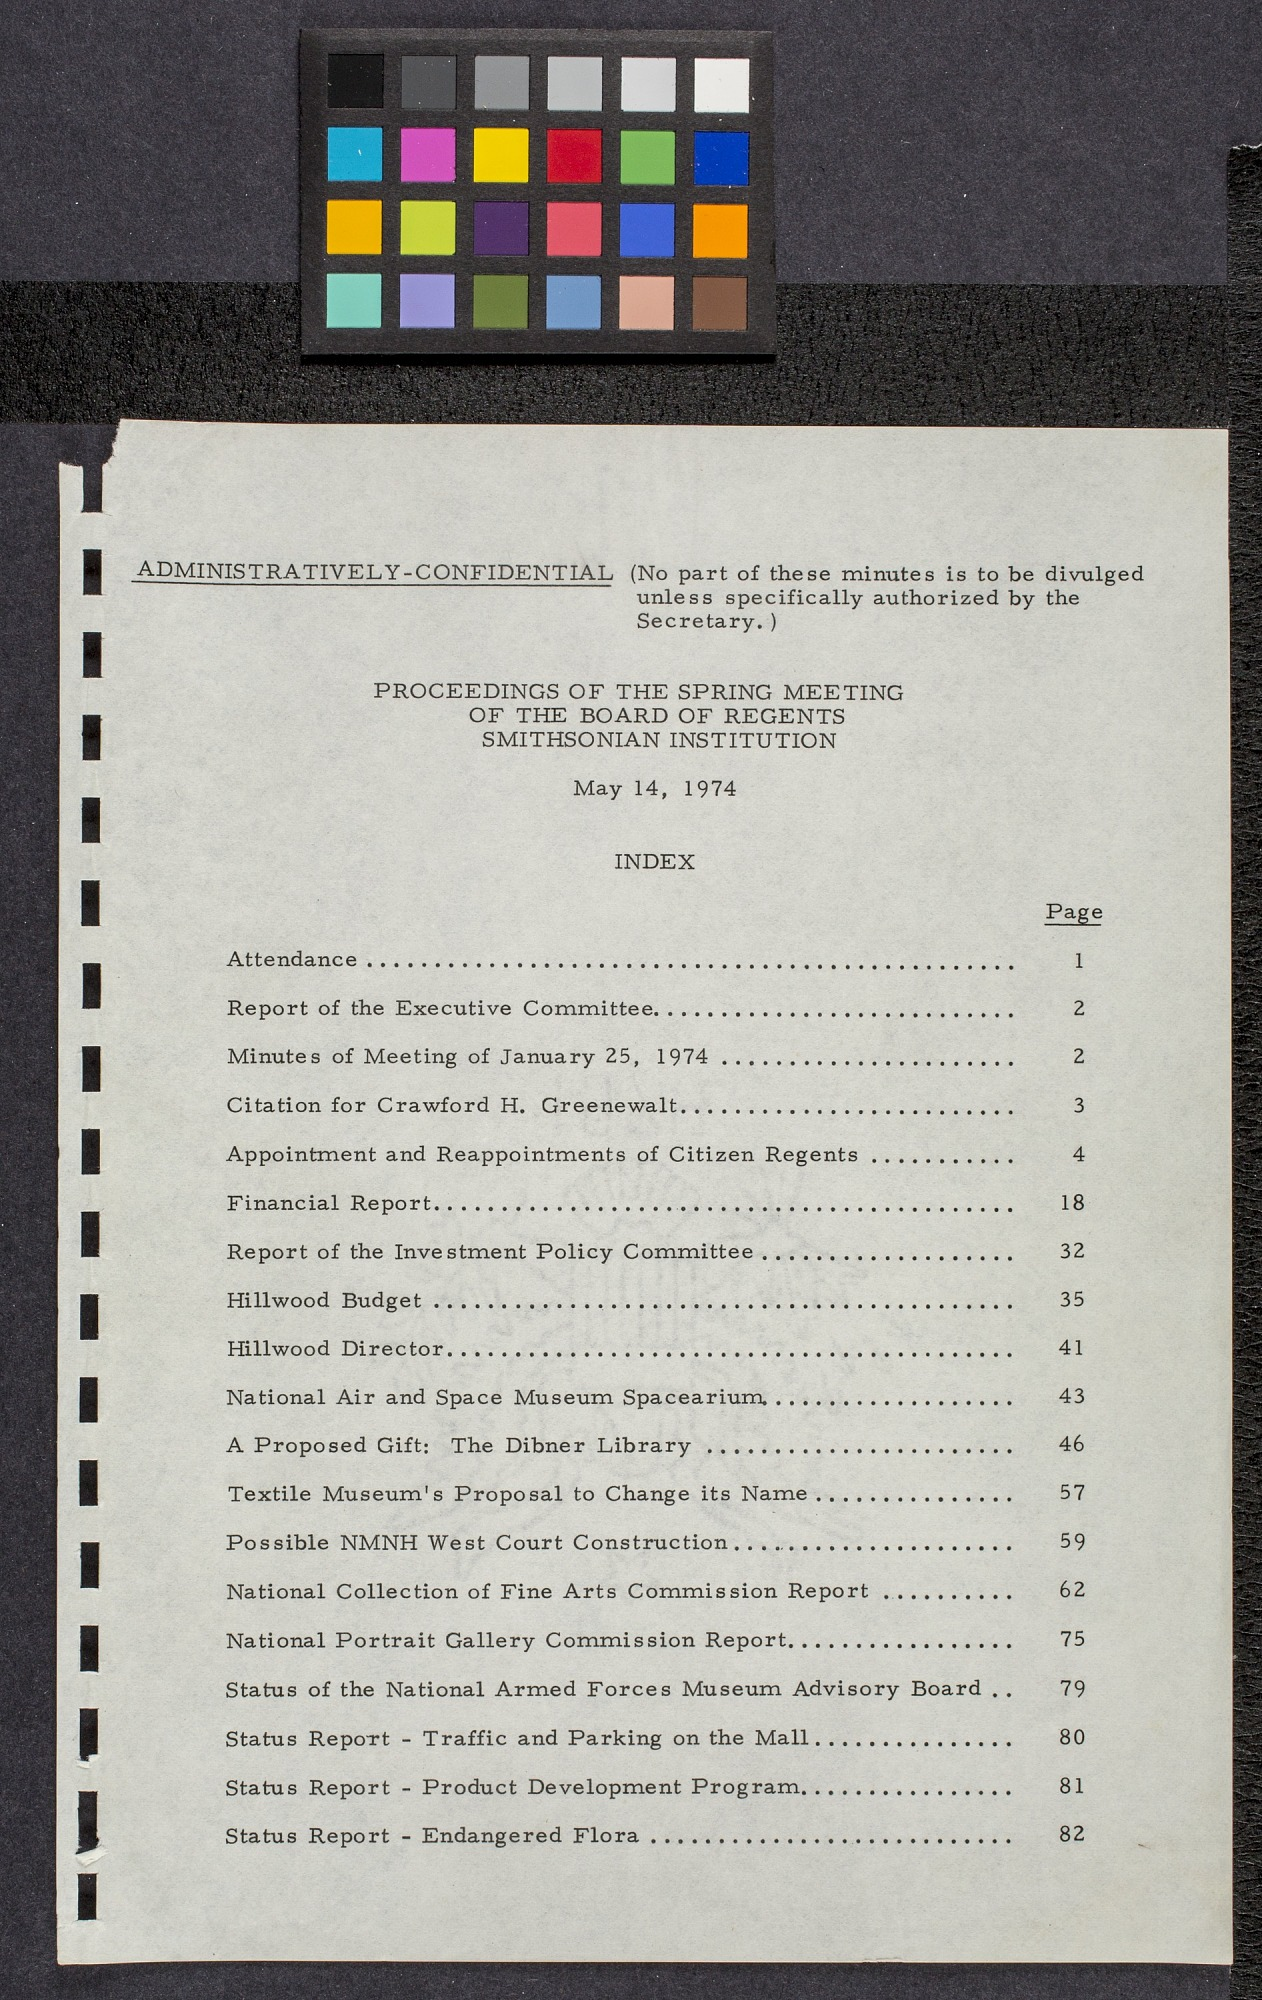 Proceedings of the Board of Regents May 14, 1974